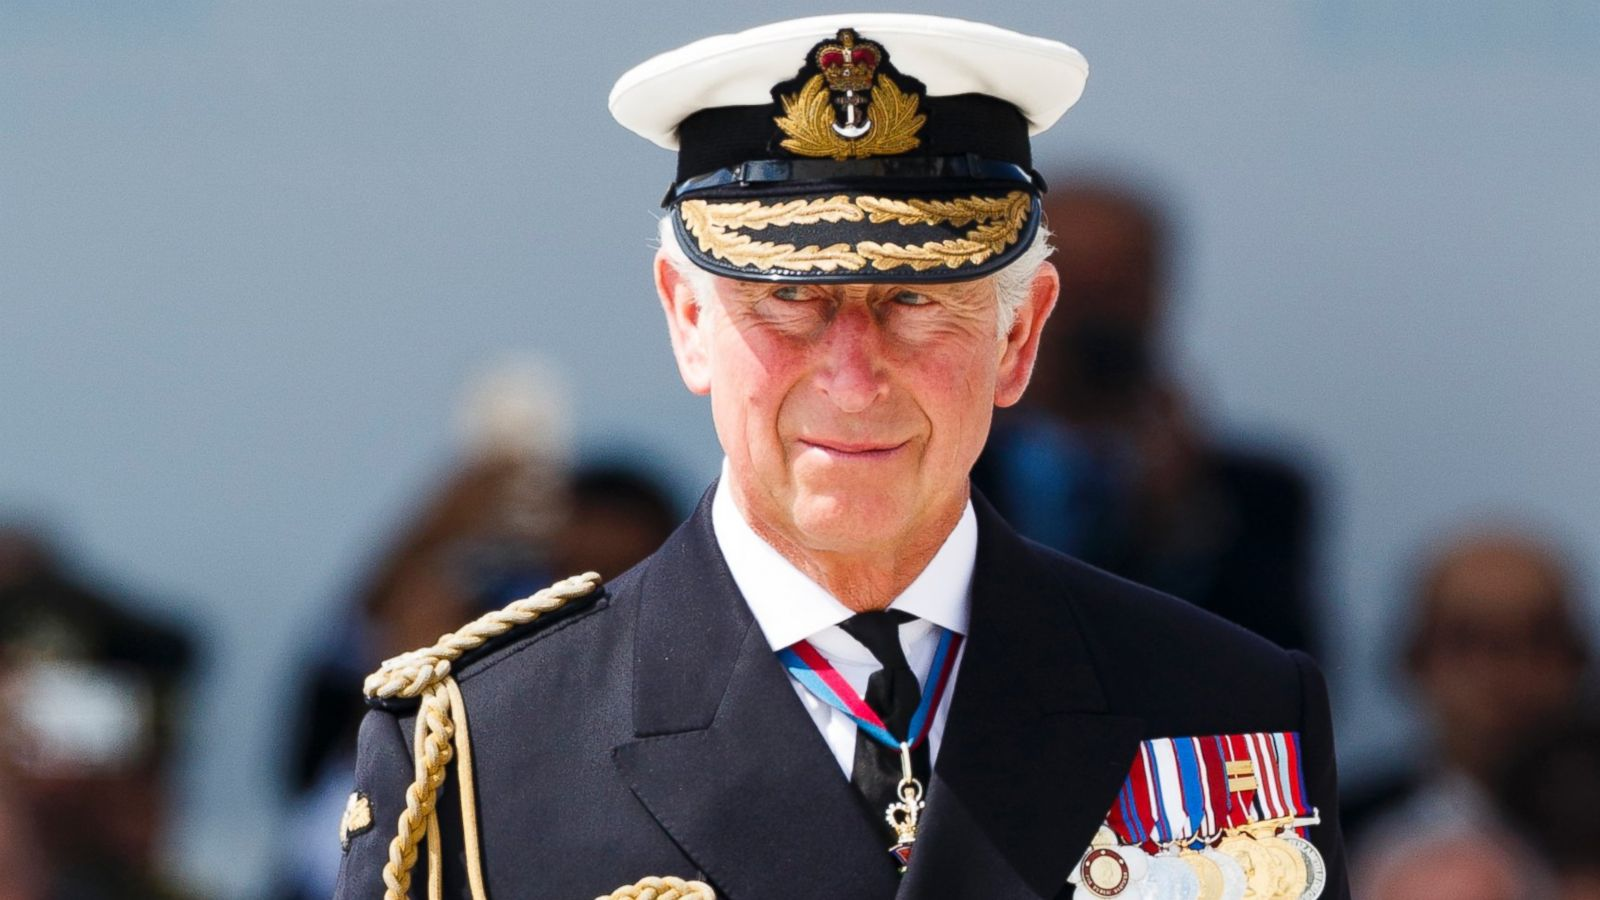 Prince Charles Is Hoping for a Granddaughter recommend